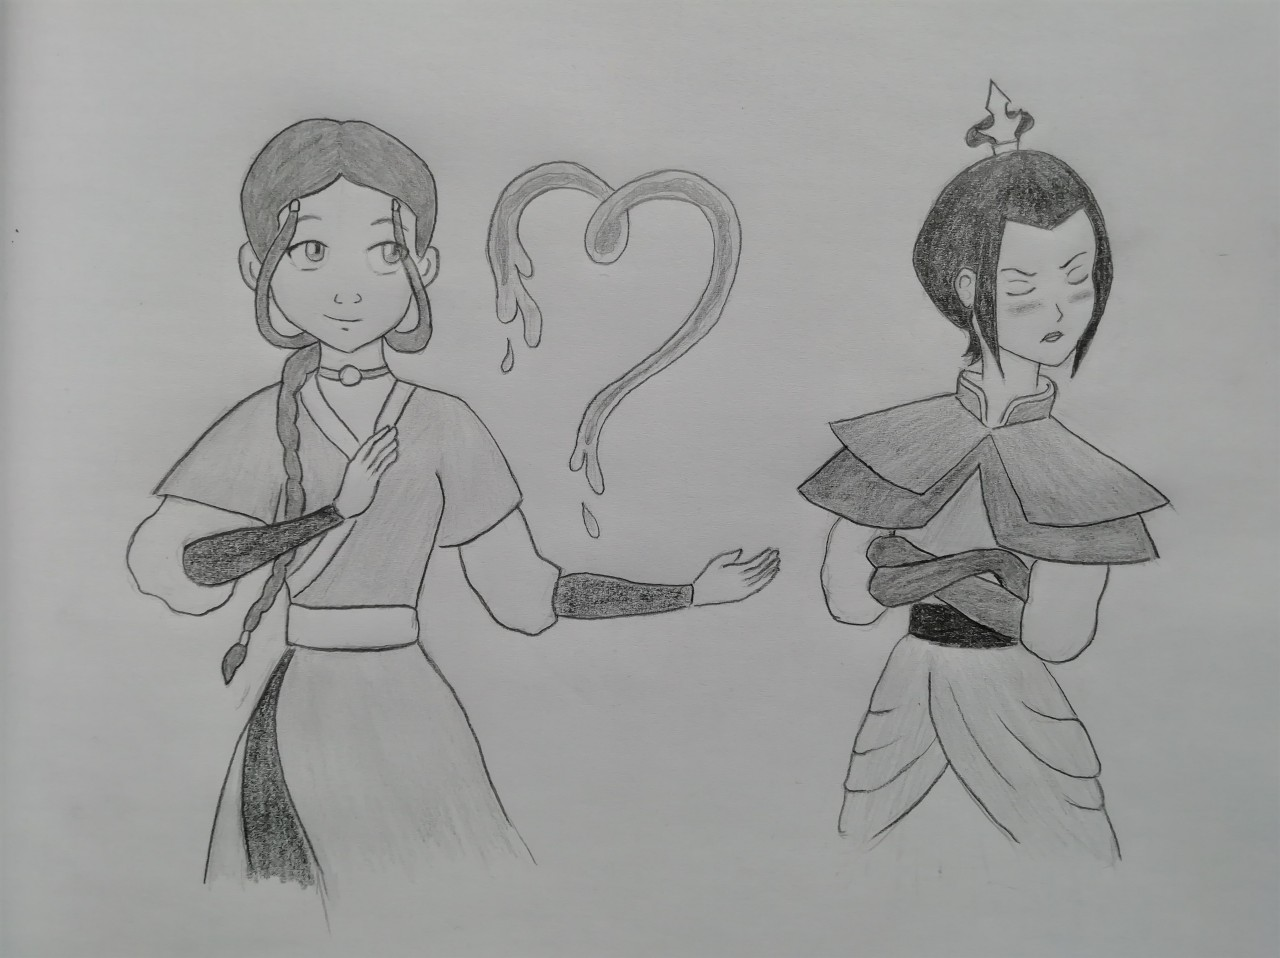 Pictured: Azula definitely not caring about any lovey-dovey nonsense. Nope. Look how much she doesn't care, guys. #Azula.........deserves love  #thats a hill Im more than willing to die on  #Ive been wondering why this ship isnt more popular  #I mean theyre narrative foils  #two very badass ladies who have one of THE best fight scenes in anything ever #its perfect #anyway now that I have somewhat unlocked the ability to draw  #I will use it to deliver upon the world that of which it needs more  #katara x azula #atla#atla fanart#azula avatar#atla katara#katara drawing#katara fanart#azula fanart#kazula#azutara #I have no idea what the actual shipname is  #my attempt at art